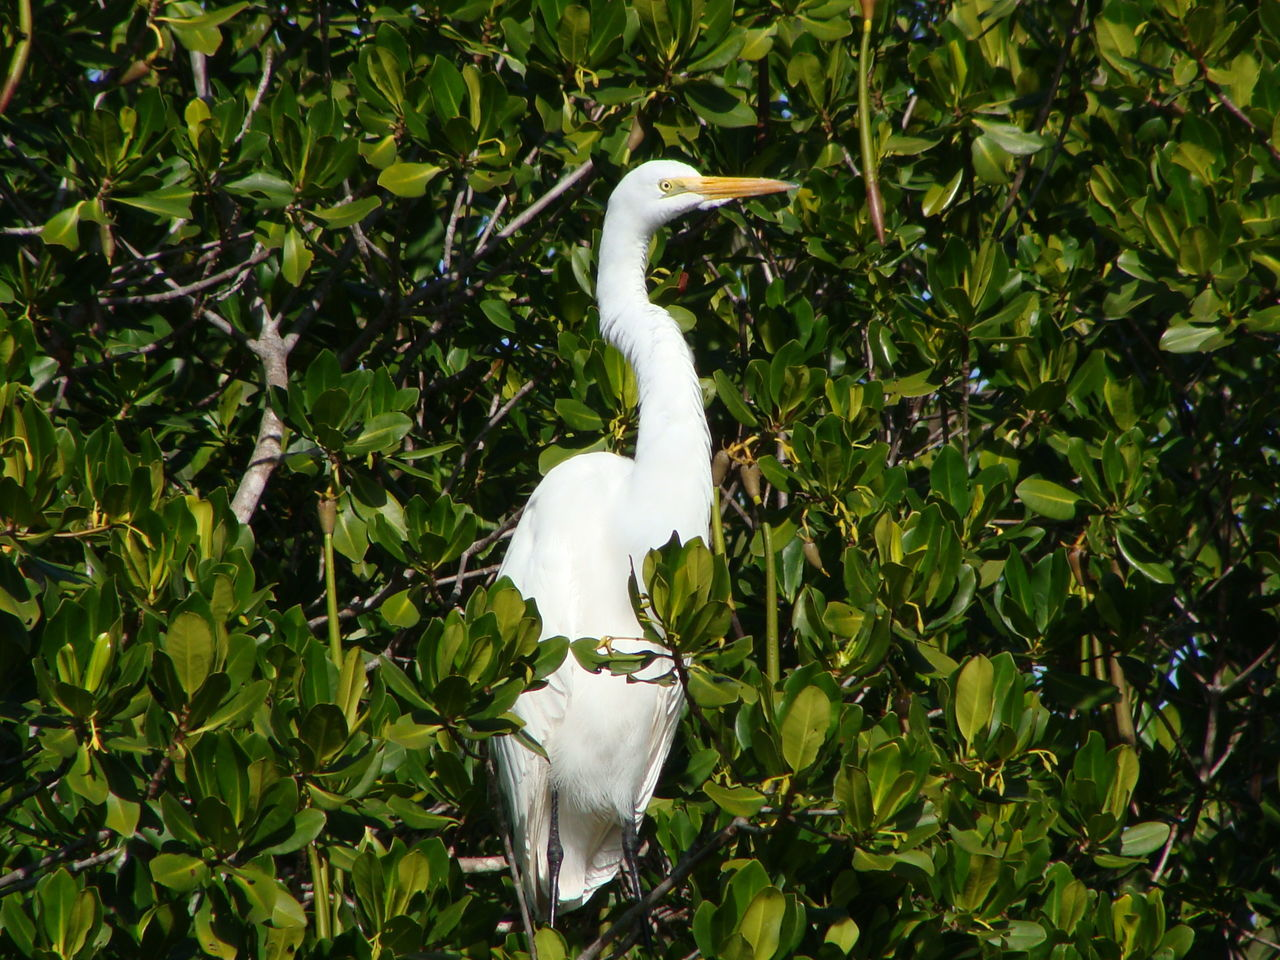 Animal Themes Animal Wildlife Animals In The Wild Beauty In Nature Bird Crane - Bird Day Egret Florida Great Egret Great Egrets Green Color Heron Mangroves Nature No People One Animal Outdoors Perching Perching On A Branch Sanibel Island White Color